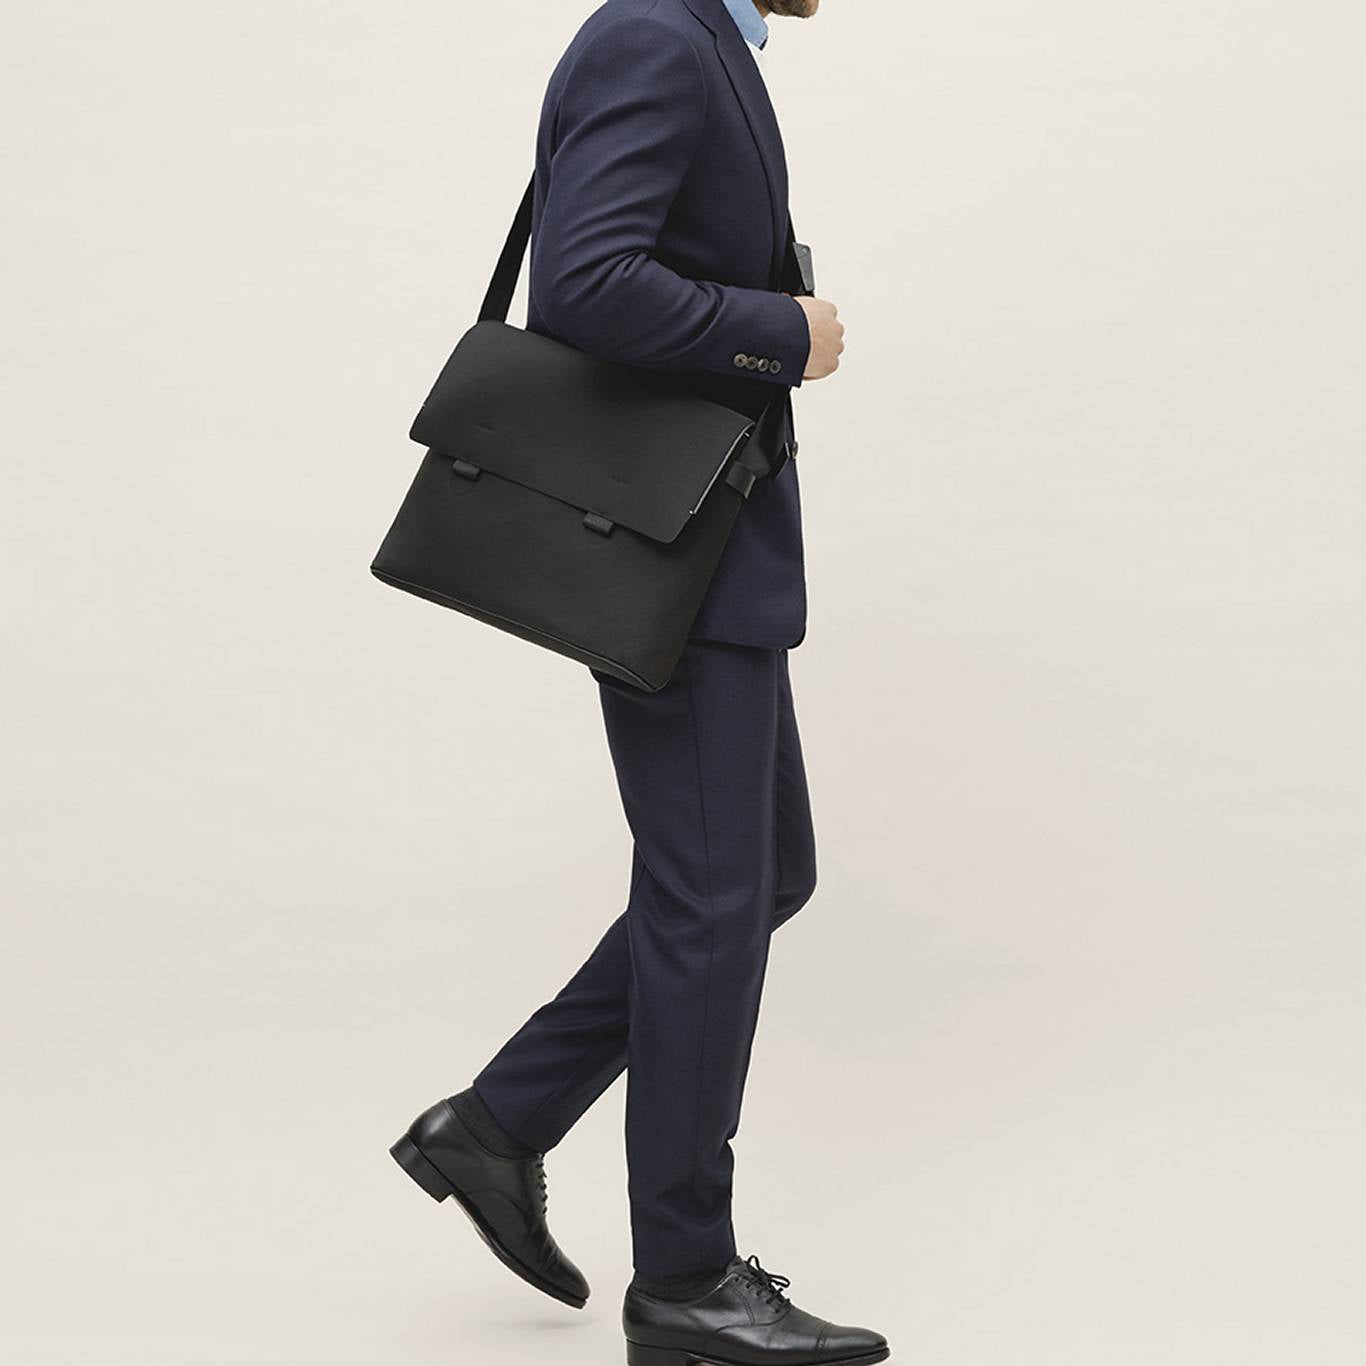 Navy blue suit paired with a black messenger bag